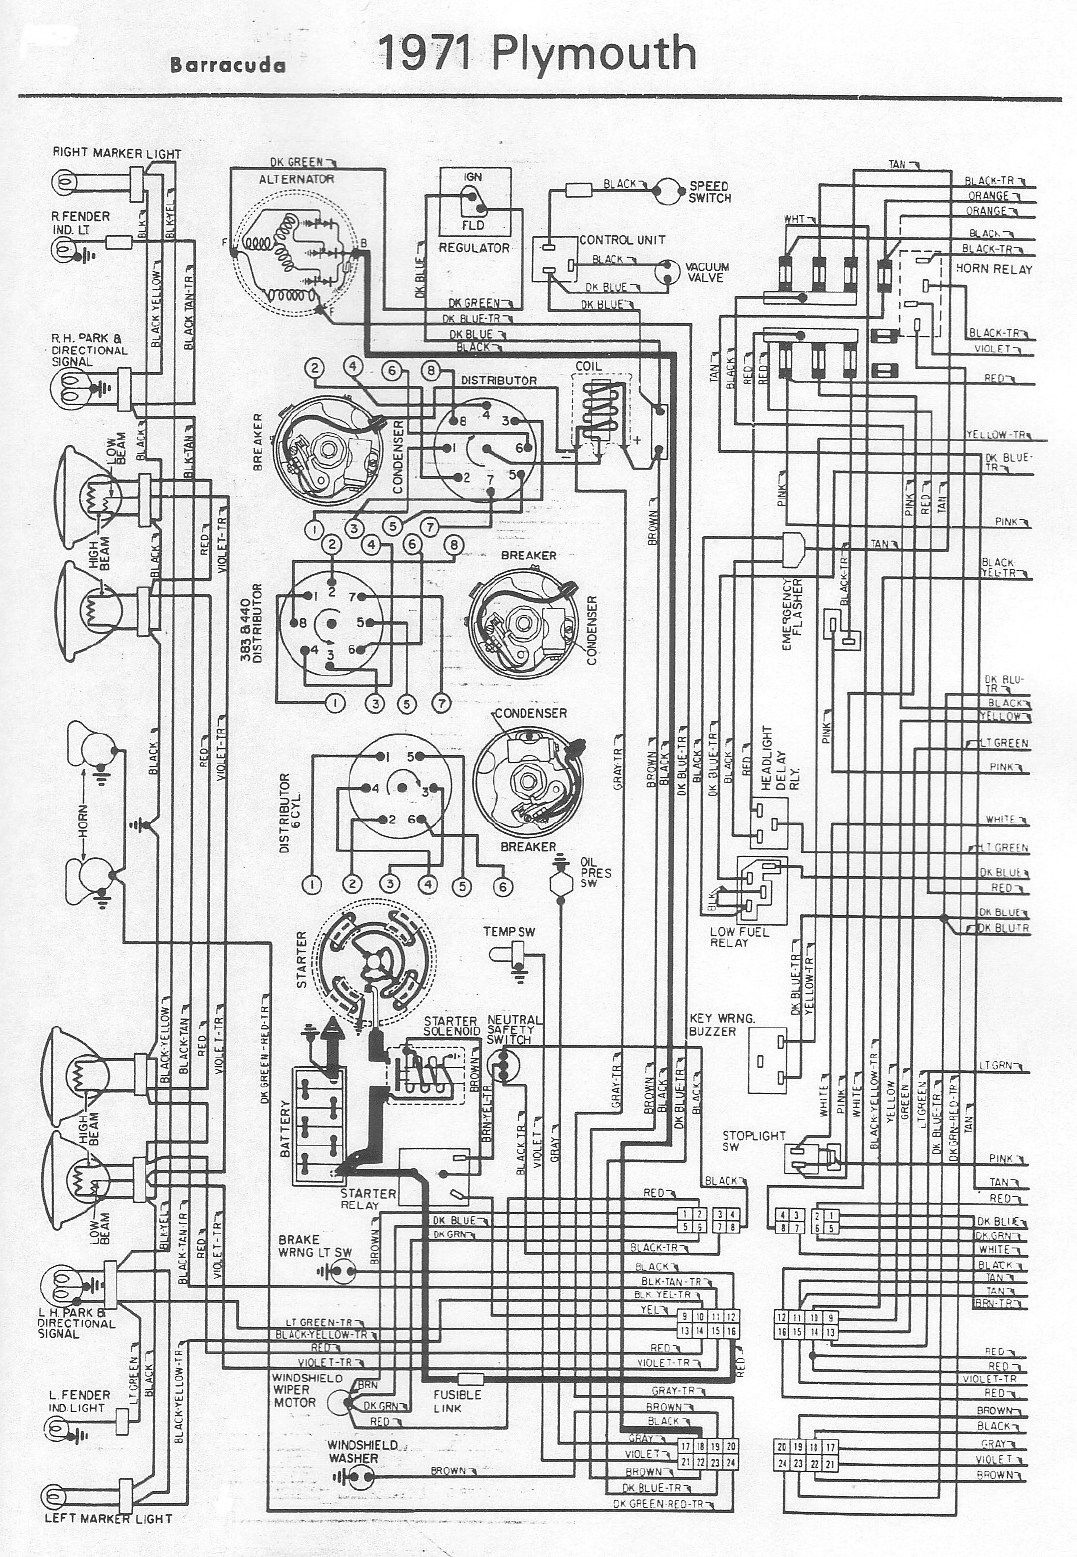 70 pontiac gto wiring diagram dodge challenger wire diagram | wiring library 70 super bee wiring diagram